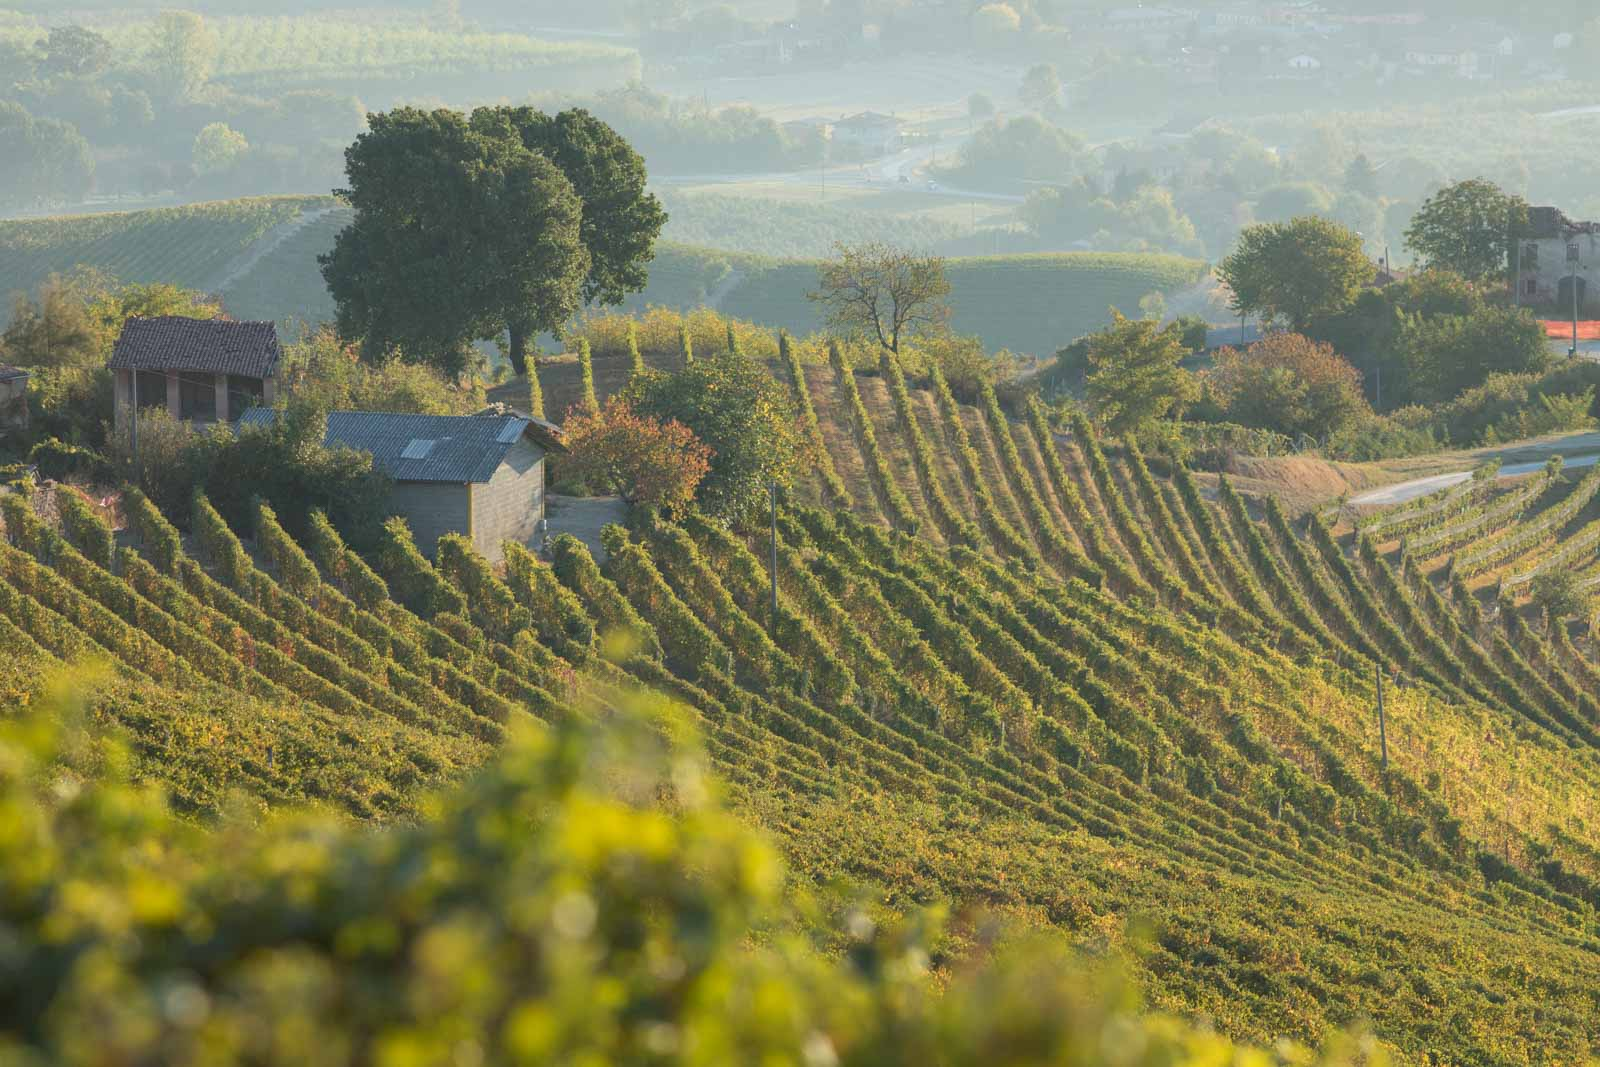 The magnificent beauty of the Brunate cru in between the towns of La Morra and Barolo. ©Kevin Day/Opening a Bottle